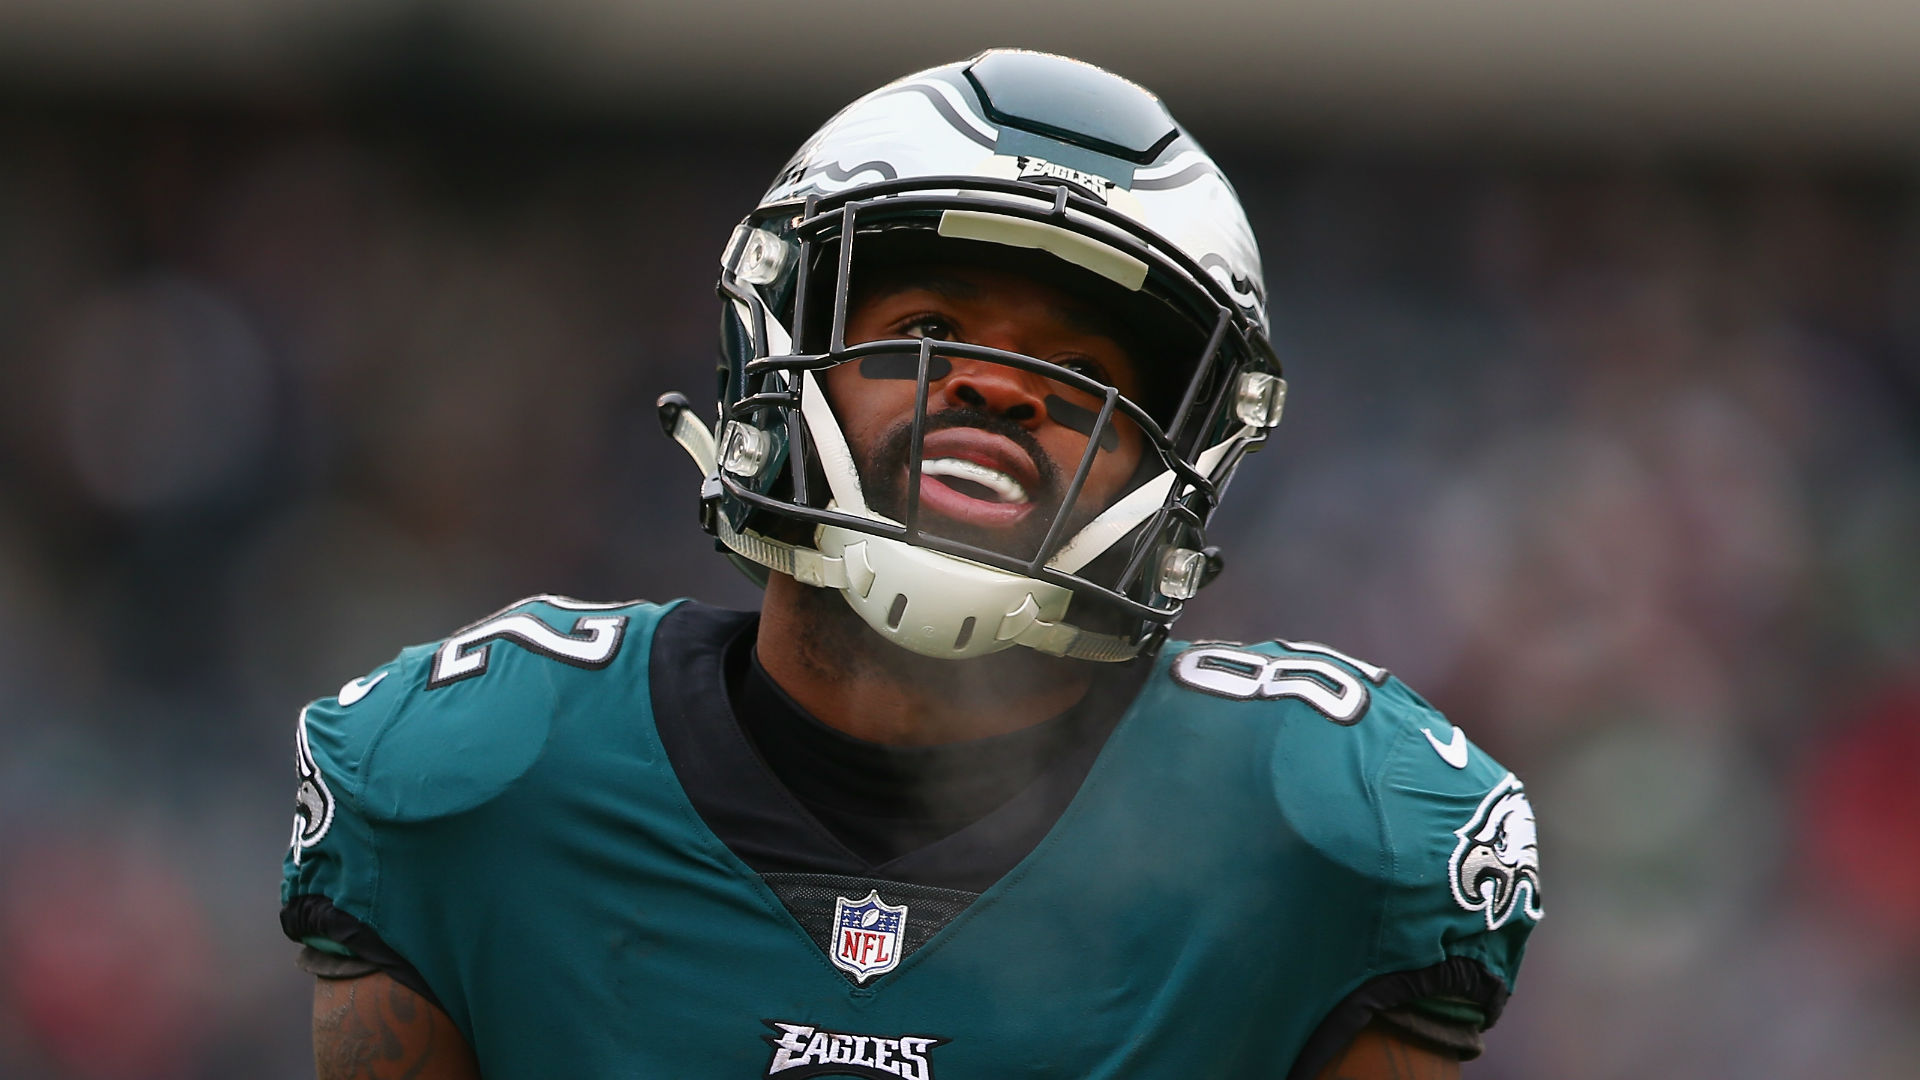 Philadelphia Eagles will miss having Torrey Smith at wideout